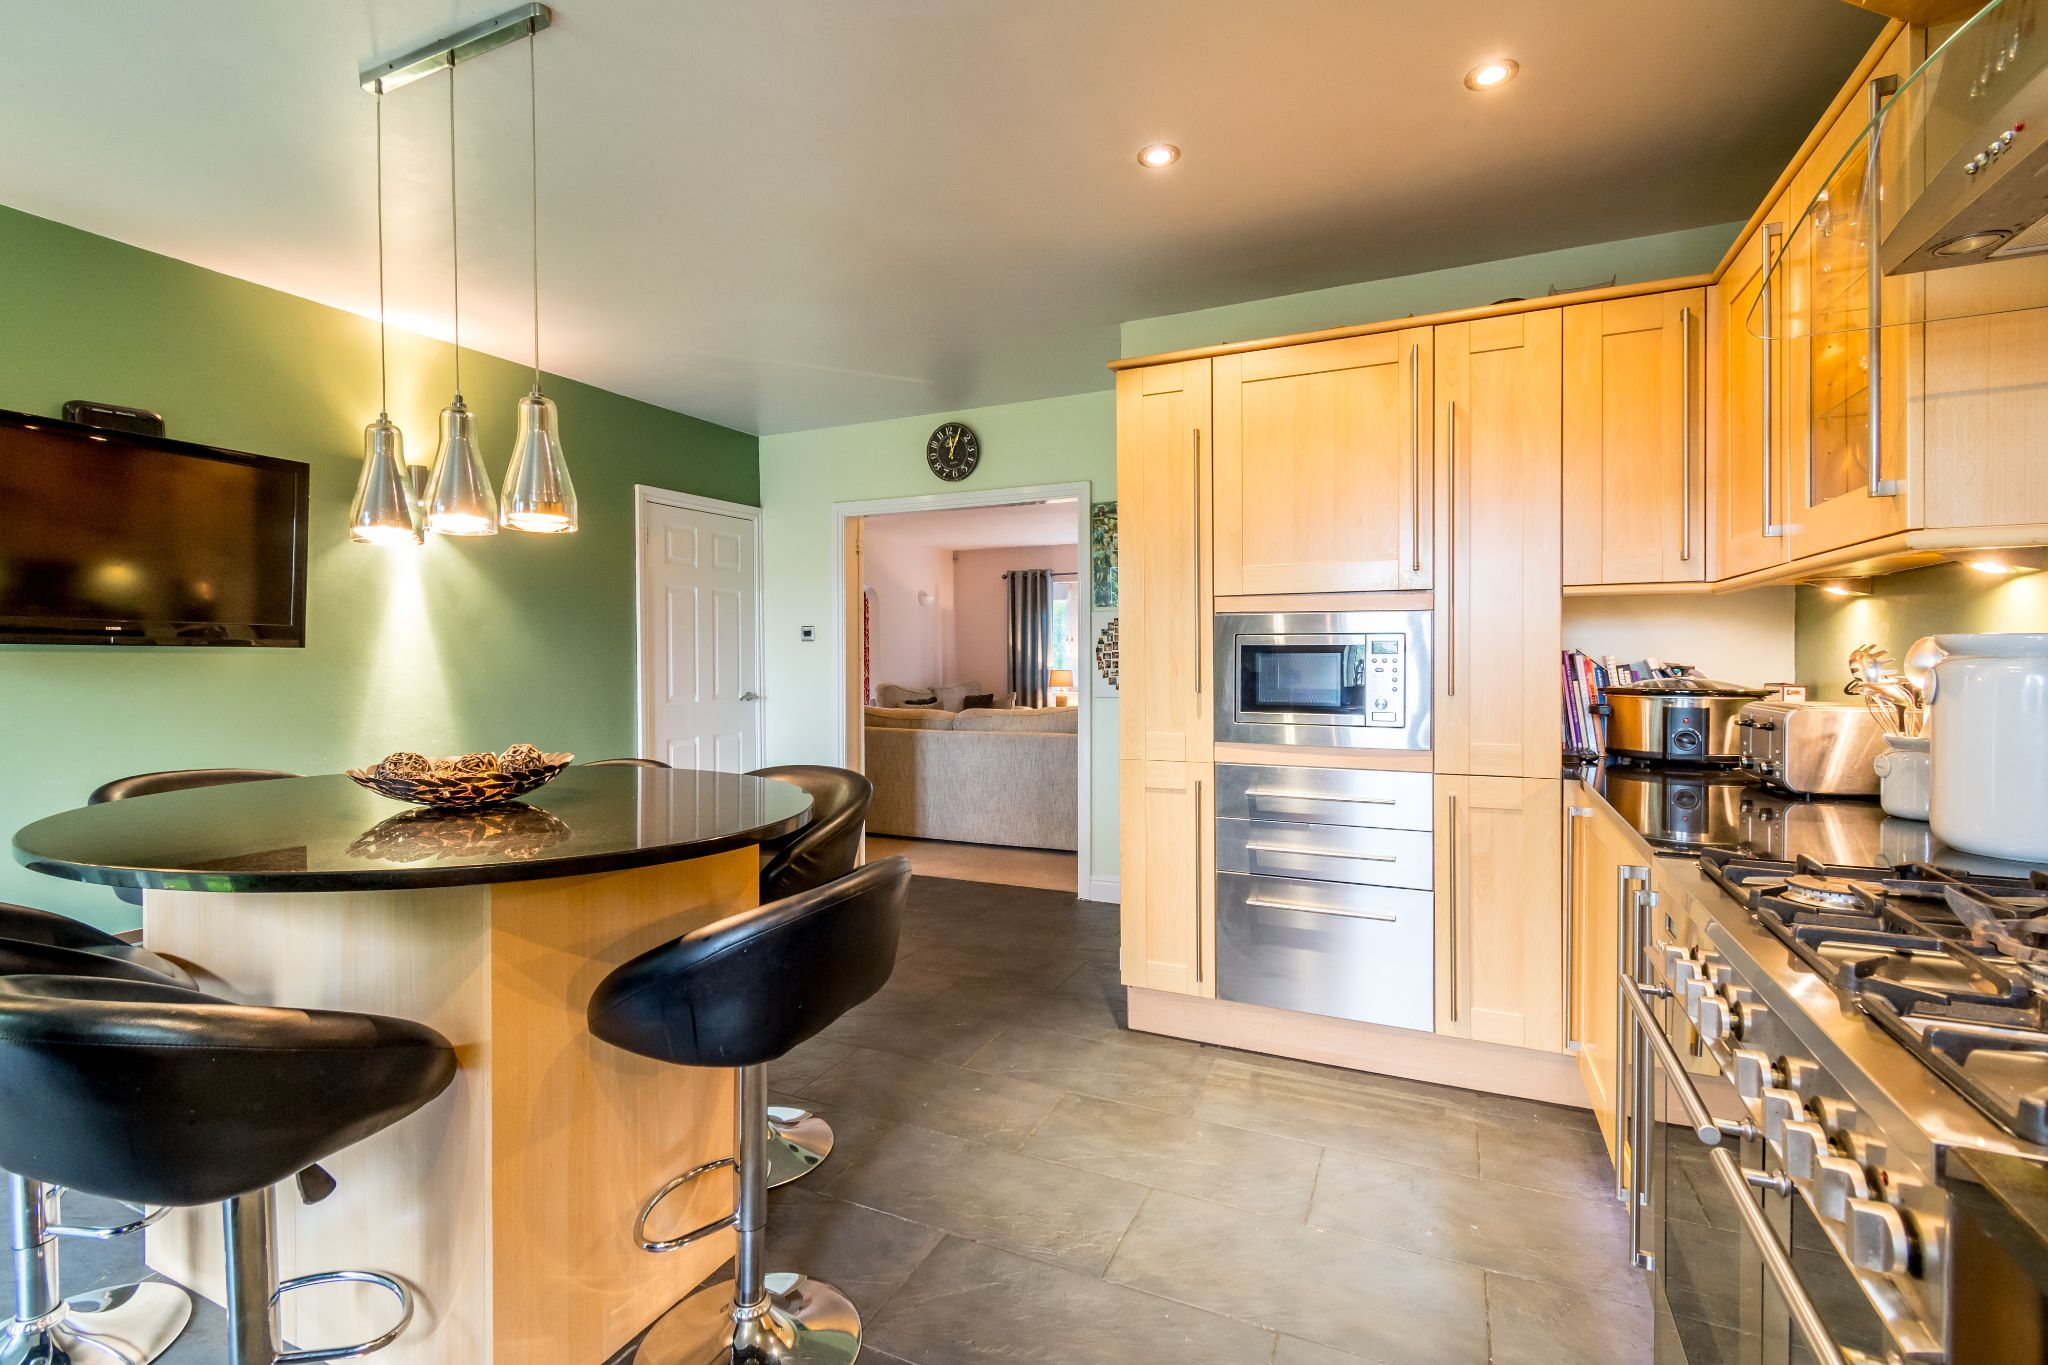 5 bedroom detached house For Sale in Brighouse - Kitchen